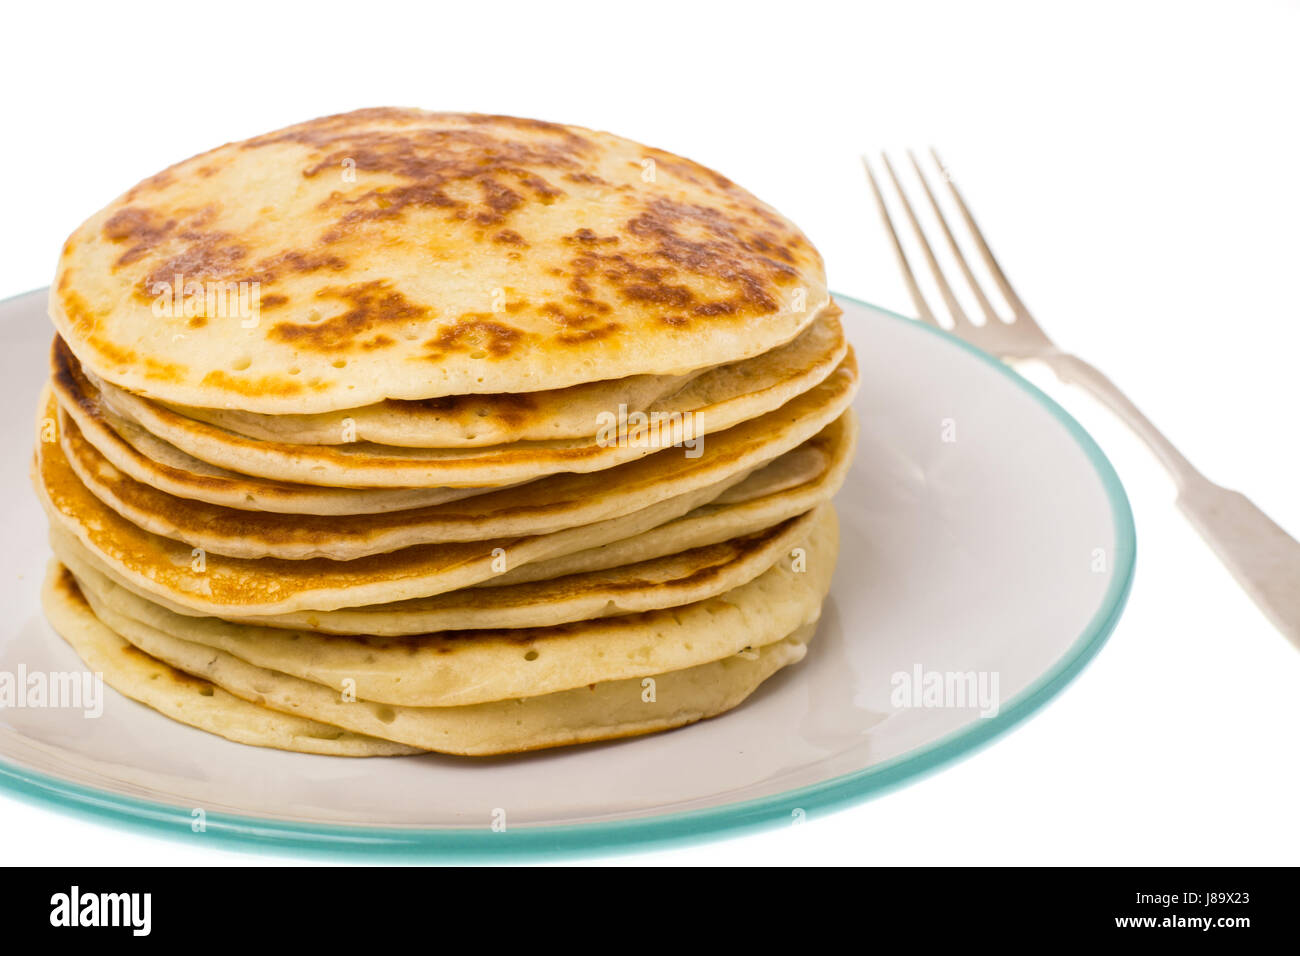 Stack of fried vanilla pancakes on plate on white background - Stock Image